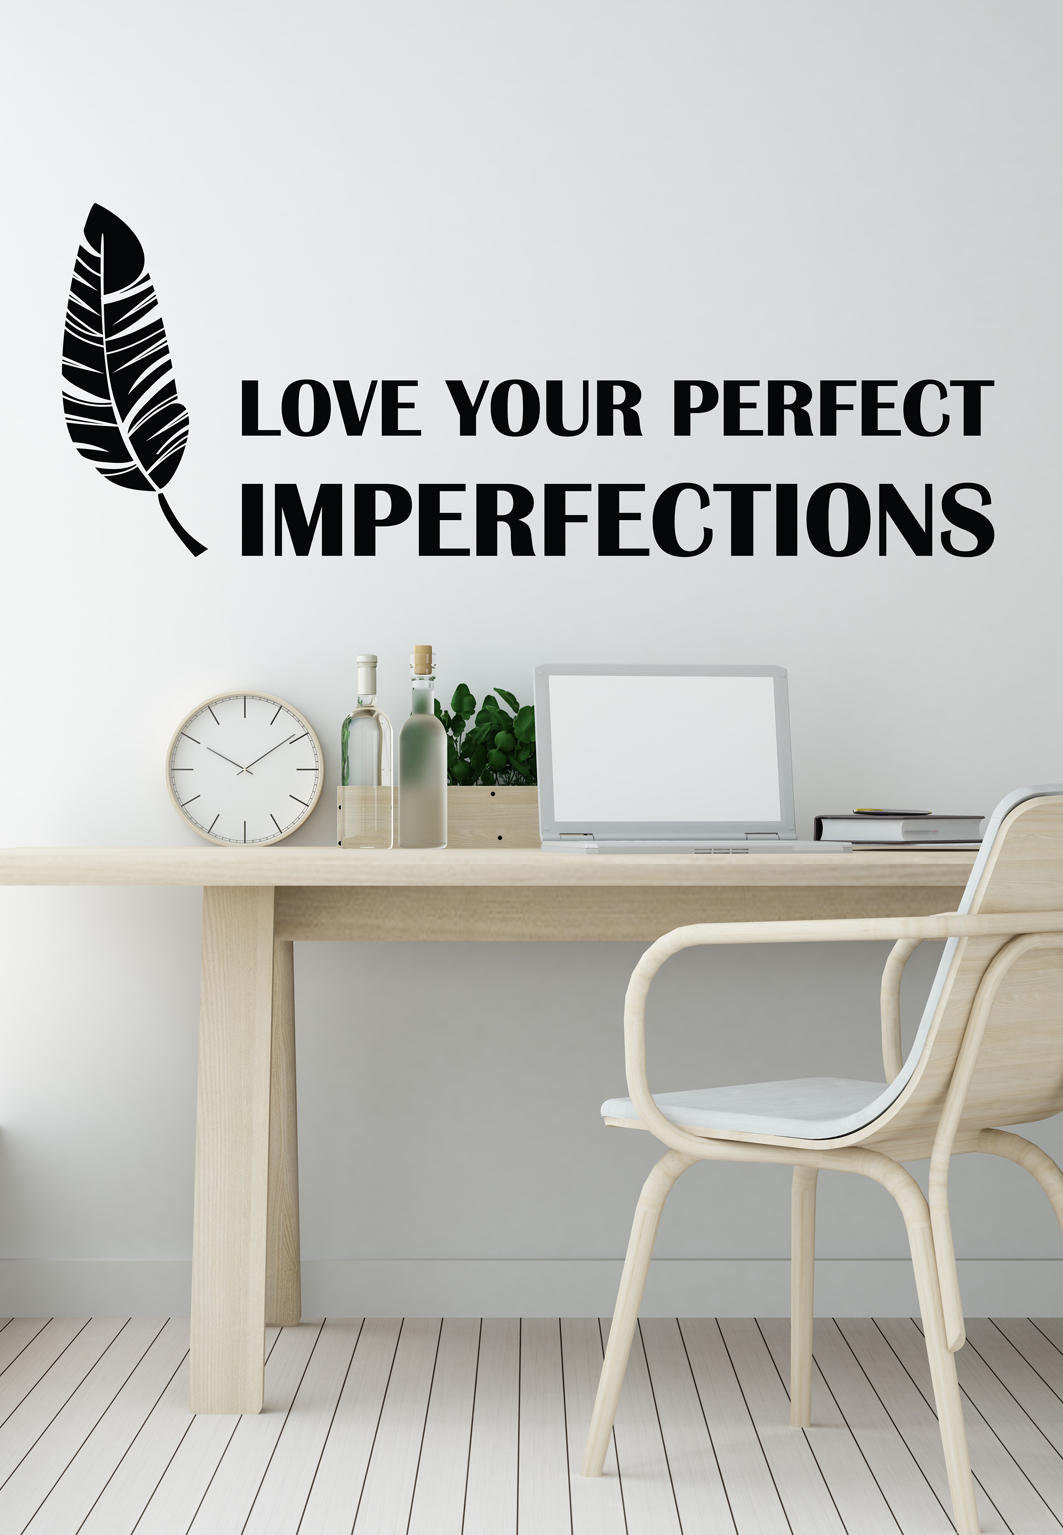 מדבקת קיר - LOVE YOUR IMPERFECTIONS